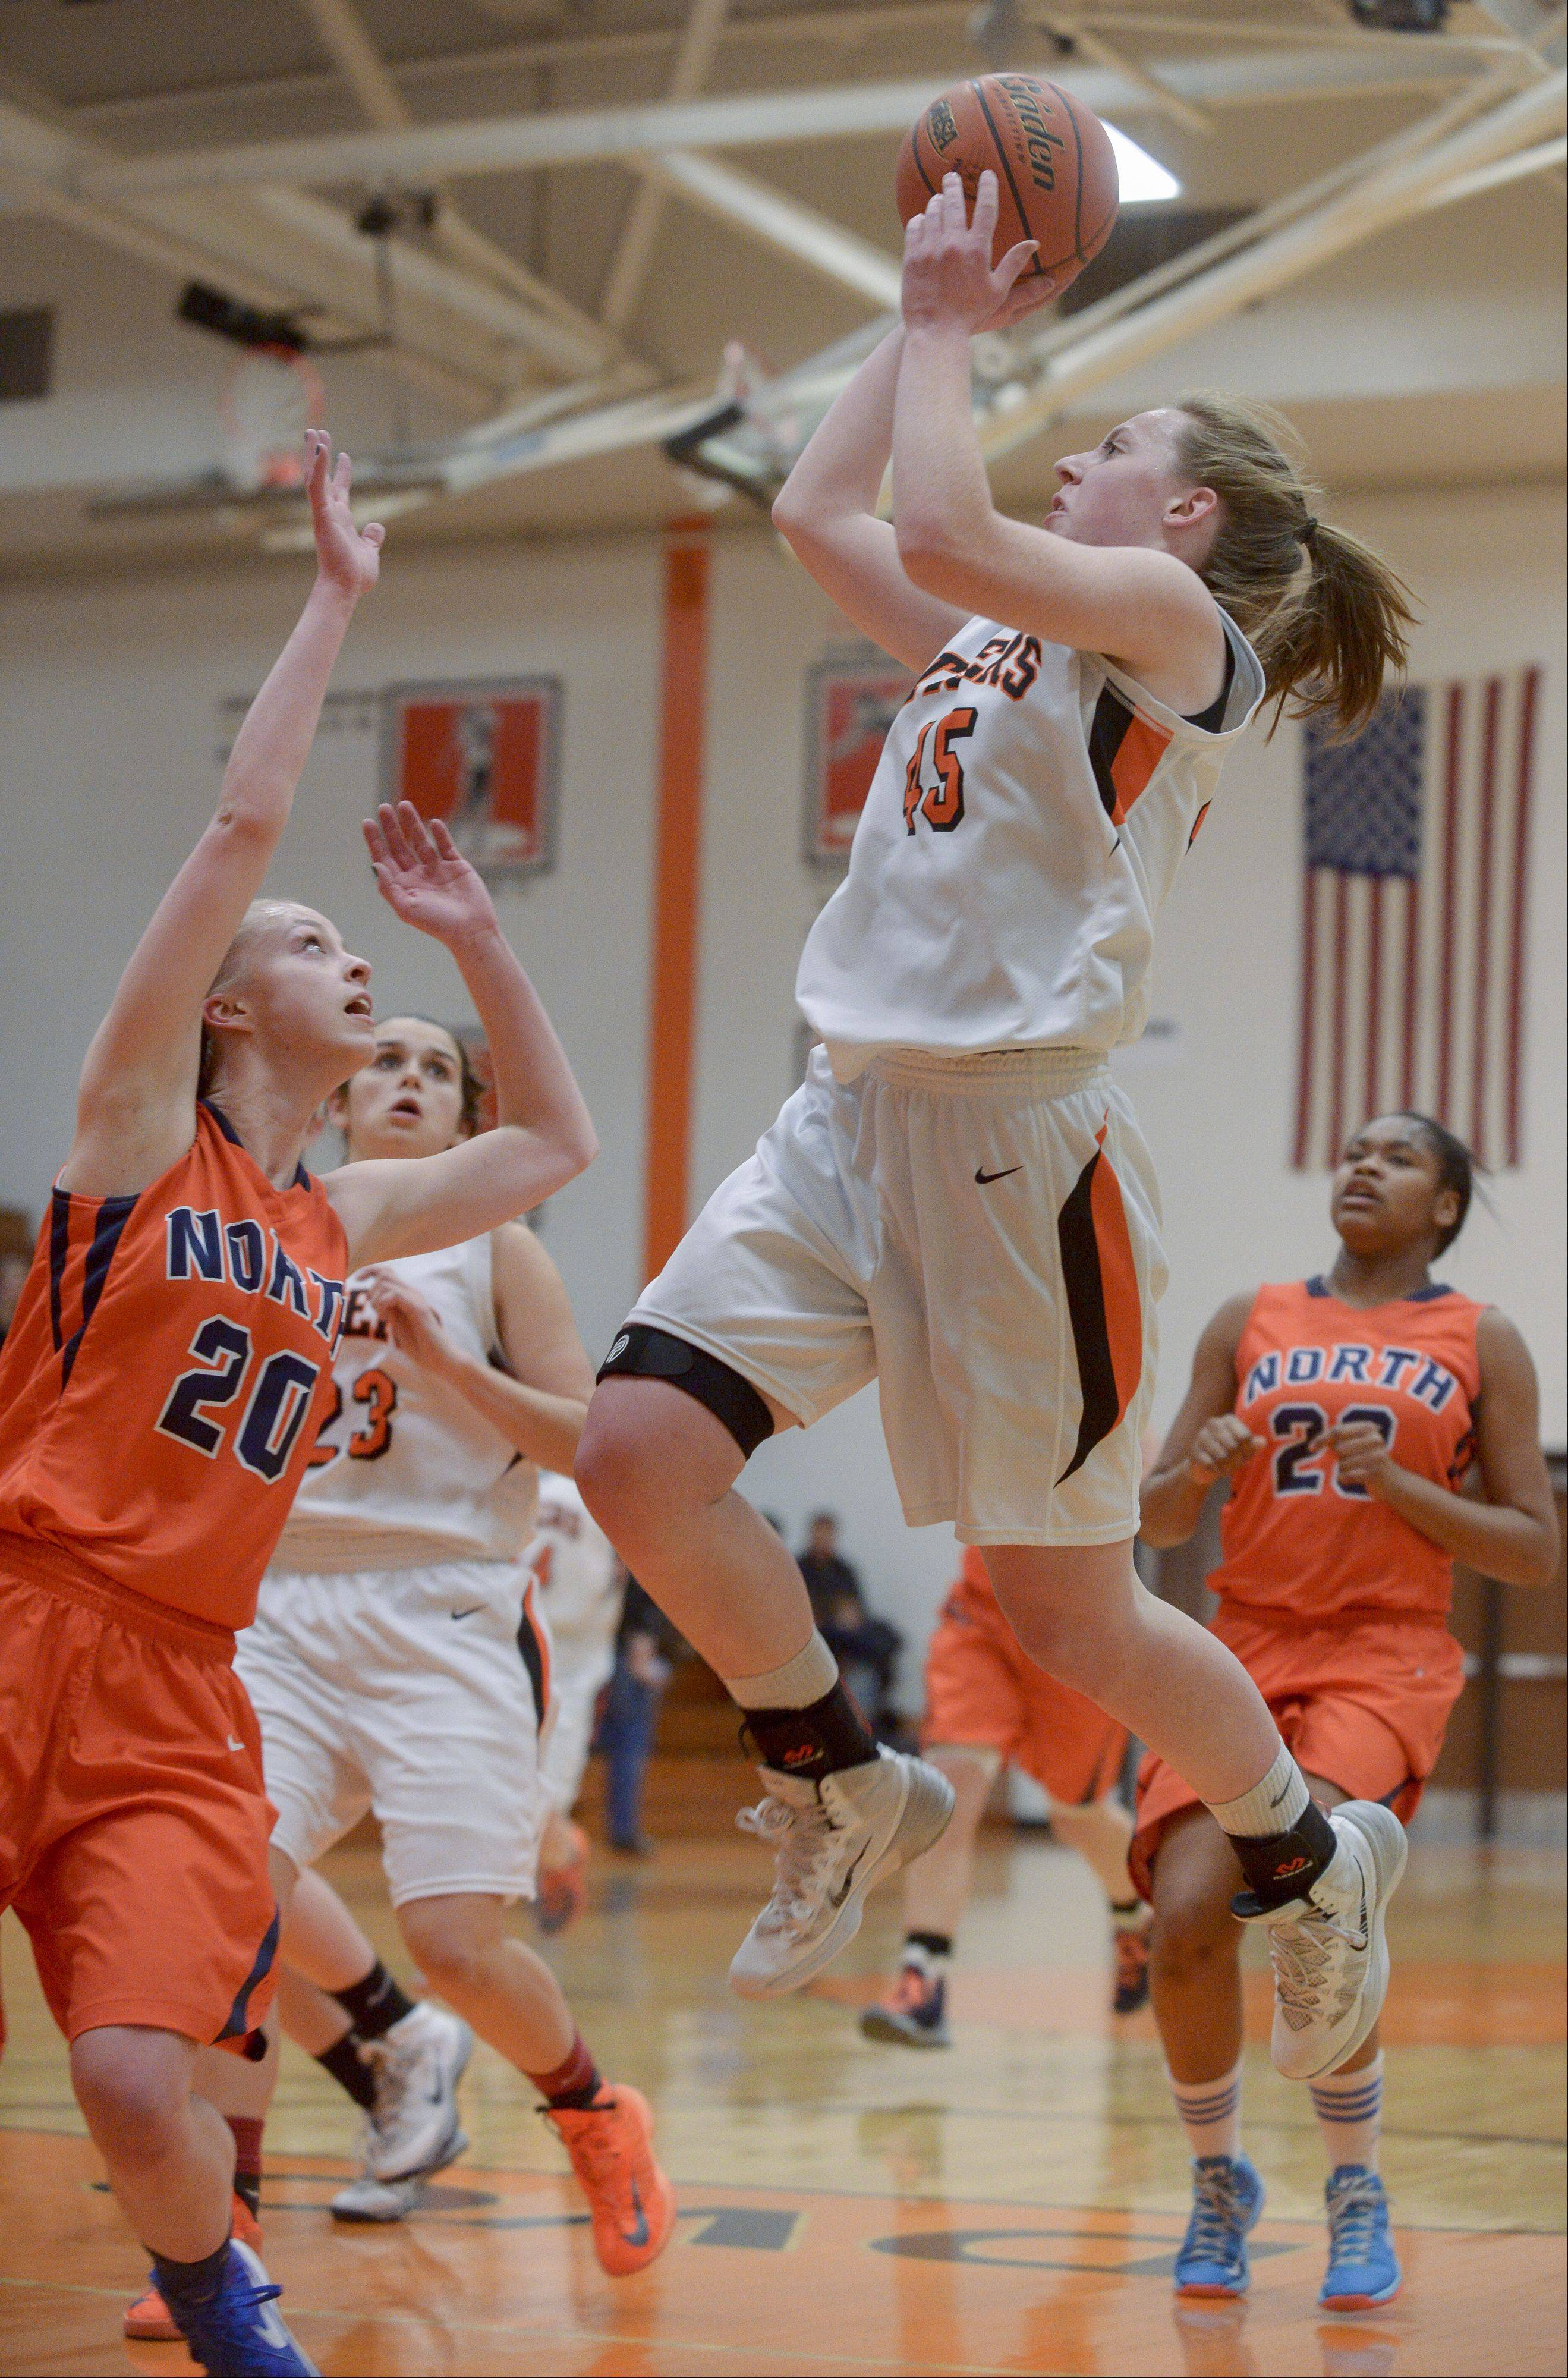 Wheaton Warrenville South's Meghan Waldron takes a shot against Naperville North's Caleigh Corbett.